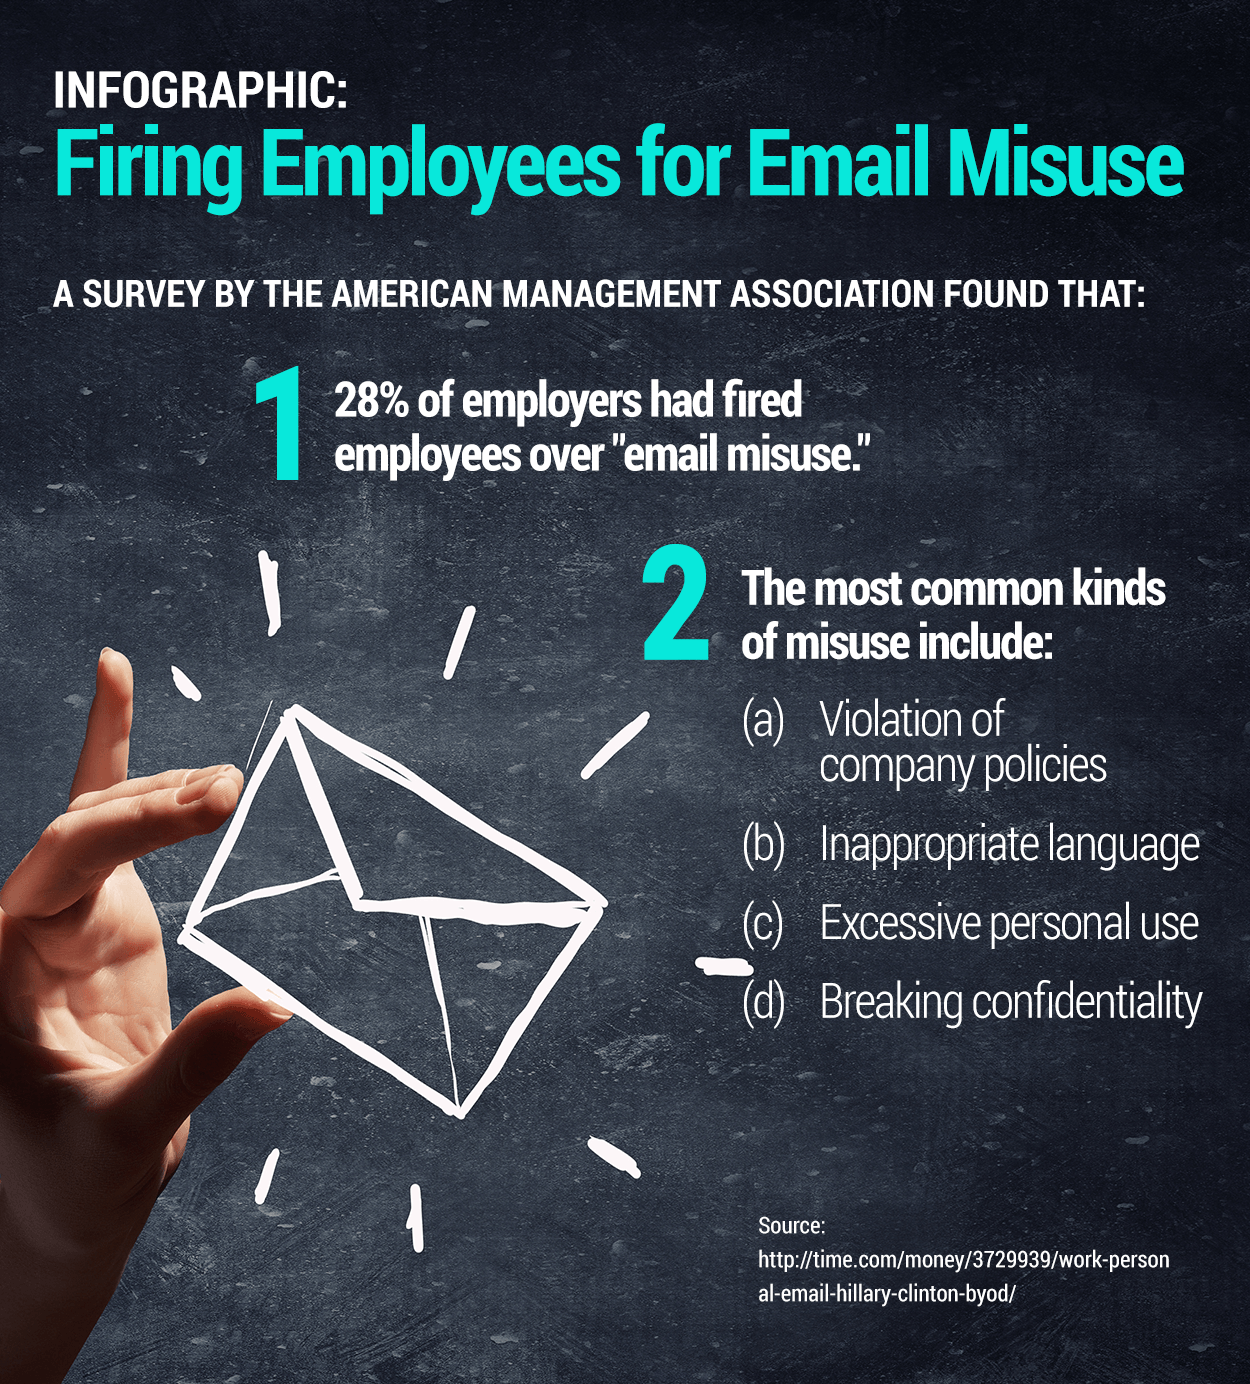 Firing Employees for Email Misuse